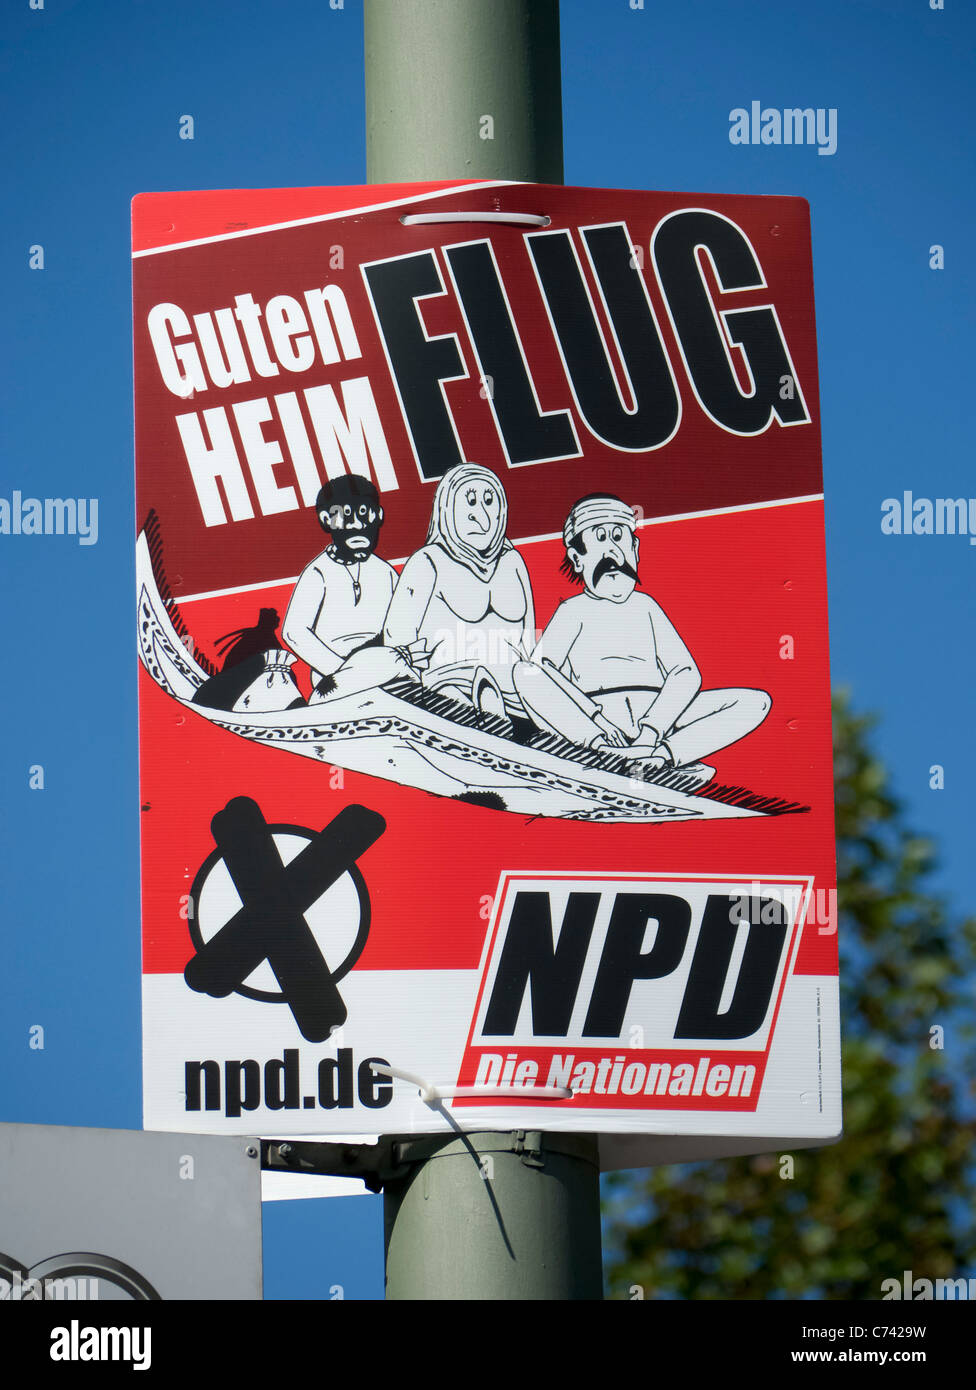 Racist party political election poster by the NPD or National Democratic Party of Germany in Berlin  before elections - Stock Image